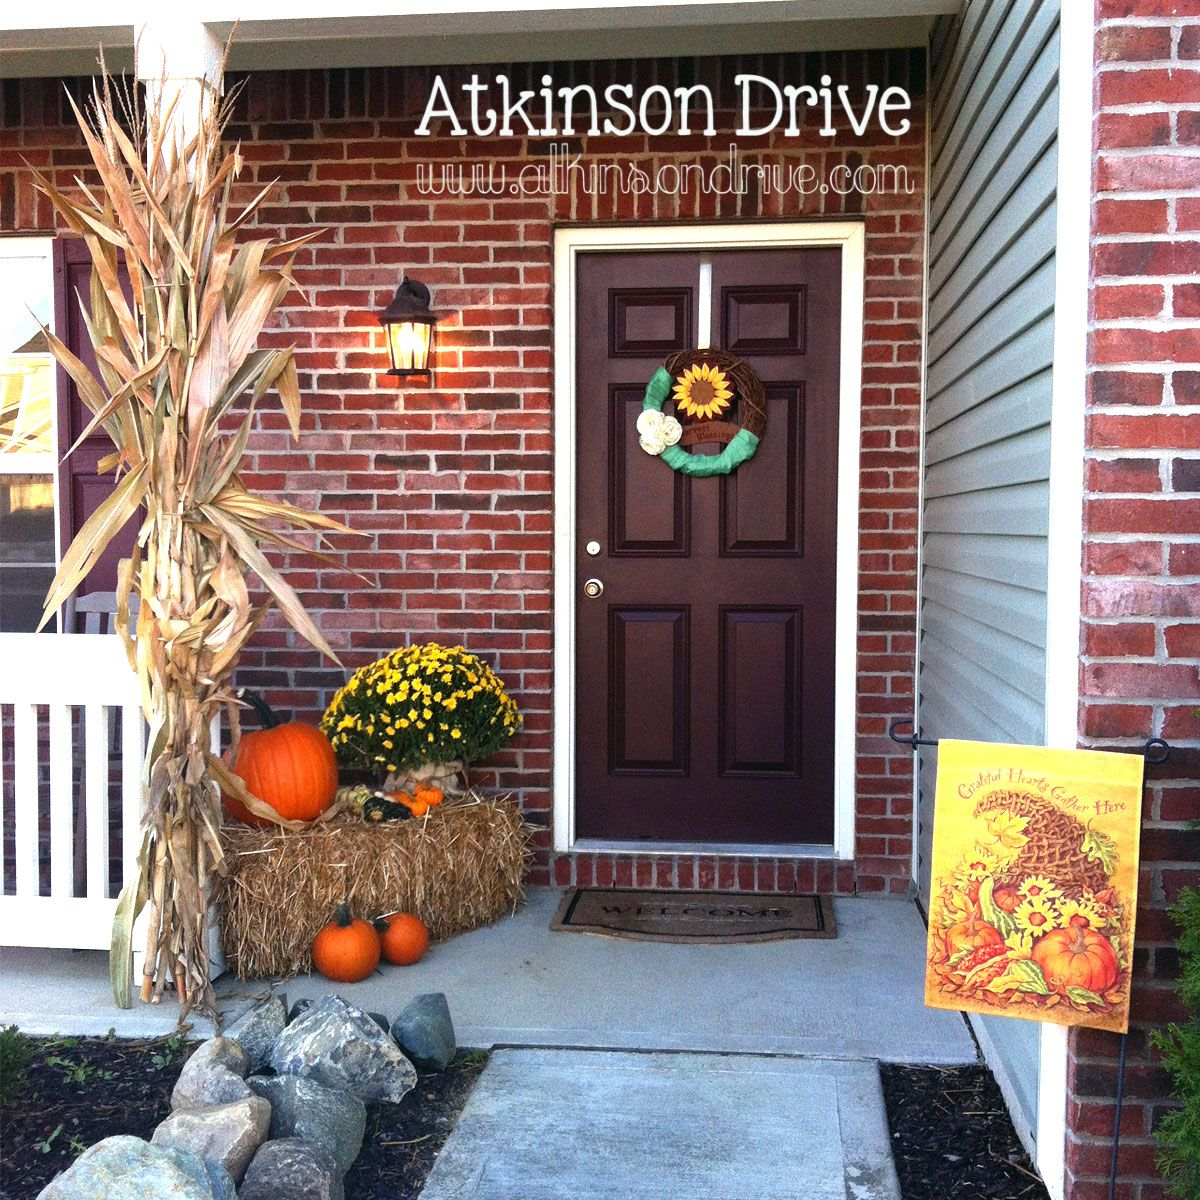 Outdoor Fall Decor Fall Decor Outdoor Fall Decorations